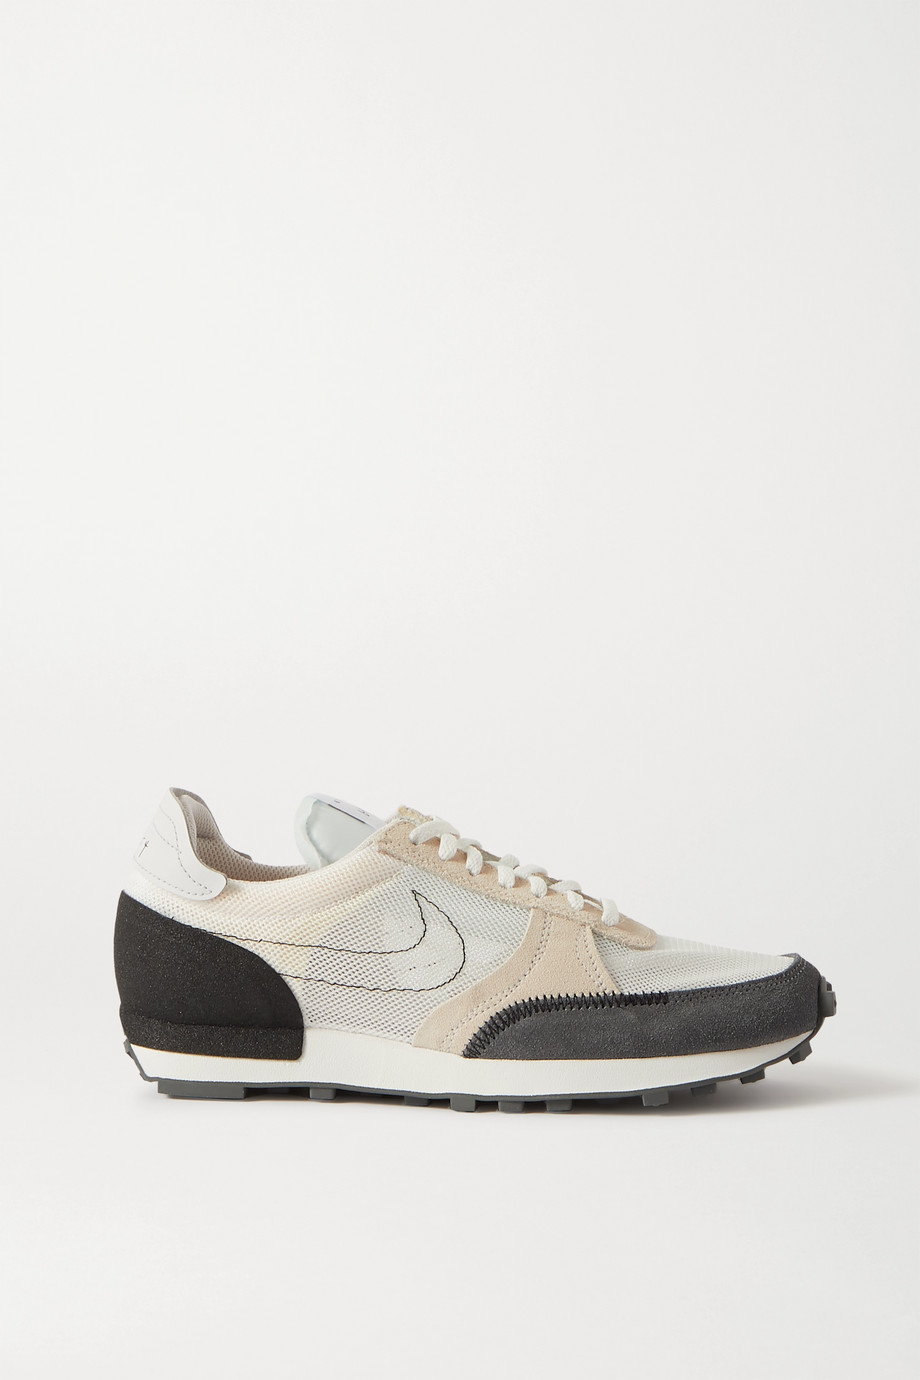 Nike Daybreak Type embroidered leather-trimmed mesh and suede sneakers